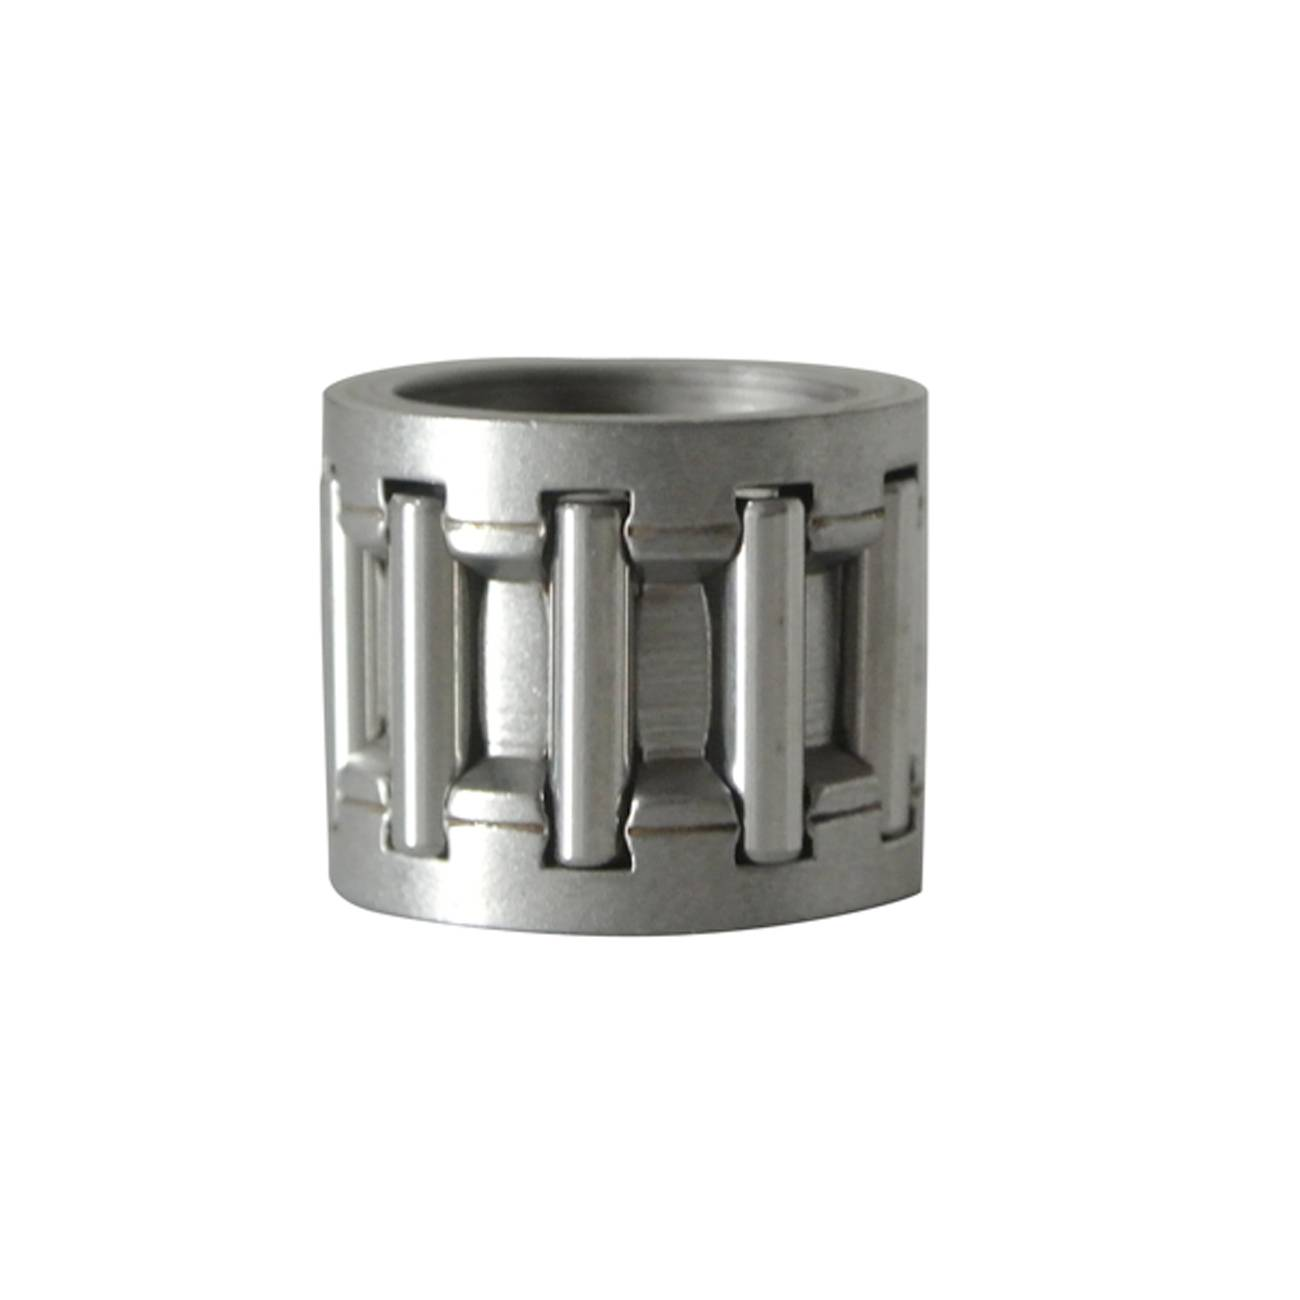 Needle Cage Piston Bearing For Husqvarna 445 450 455 460 461 Chainsaws